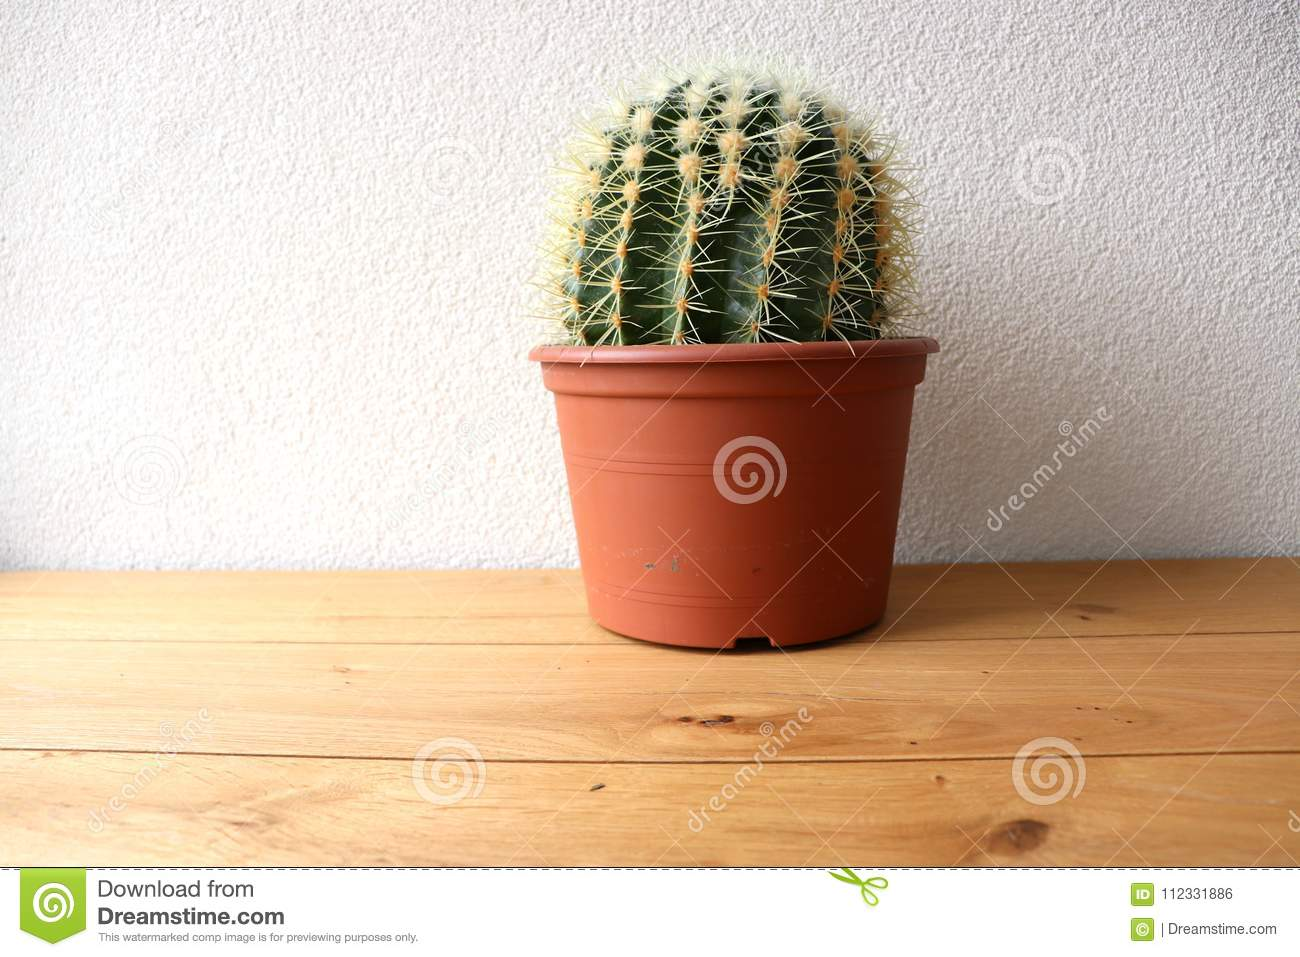 Cactus on a wooden table